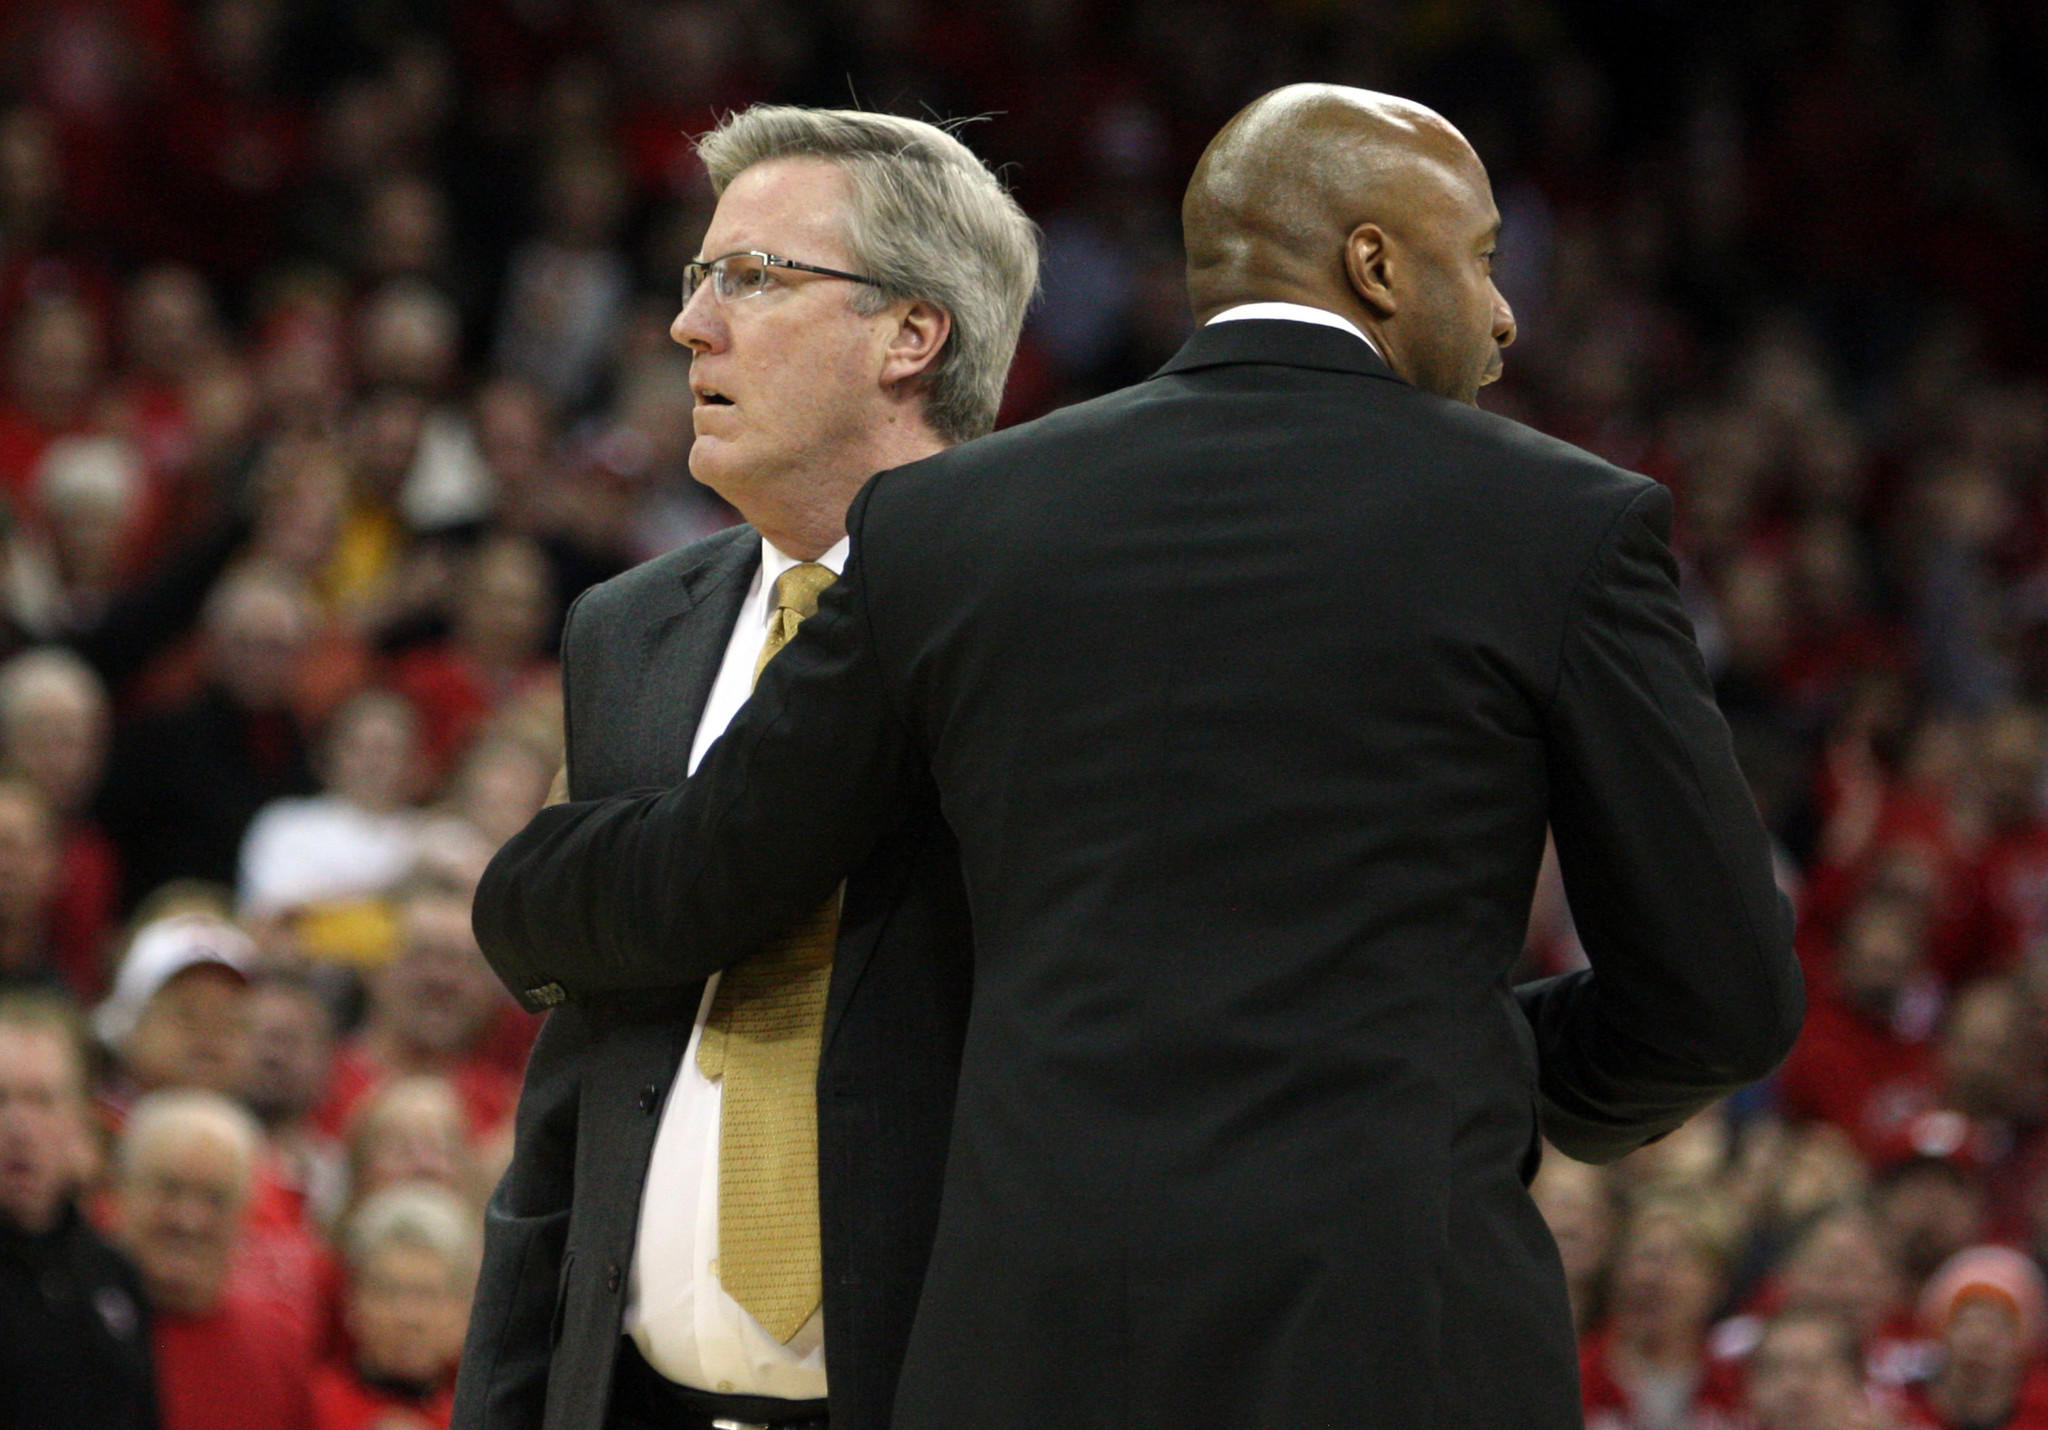 Iowa Hawkeyes head coach Fran McCaffery (left) is restrained by an assistant coach Andrew Francis after McCaffery was called for two technical fouls and then ejected from the game with the Wisconsin Badgers at the Kohl Center.